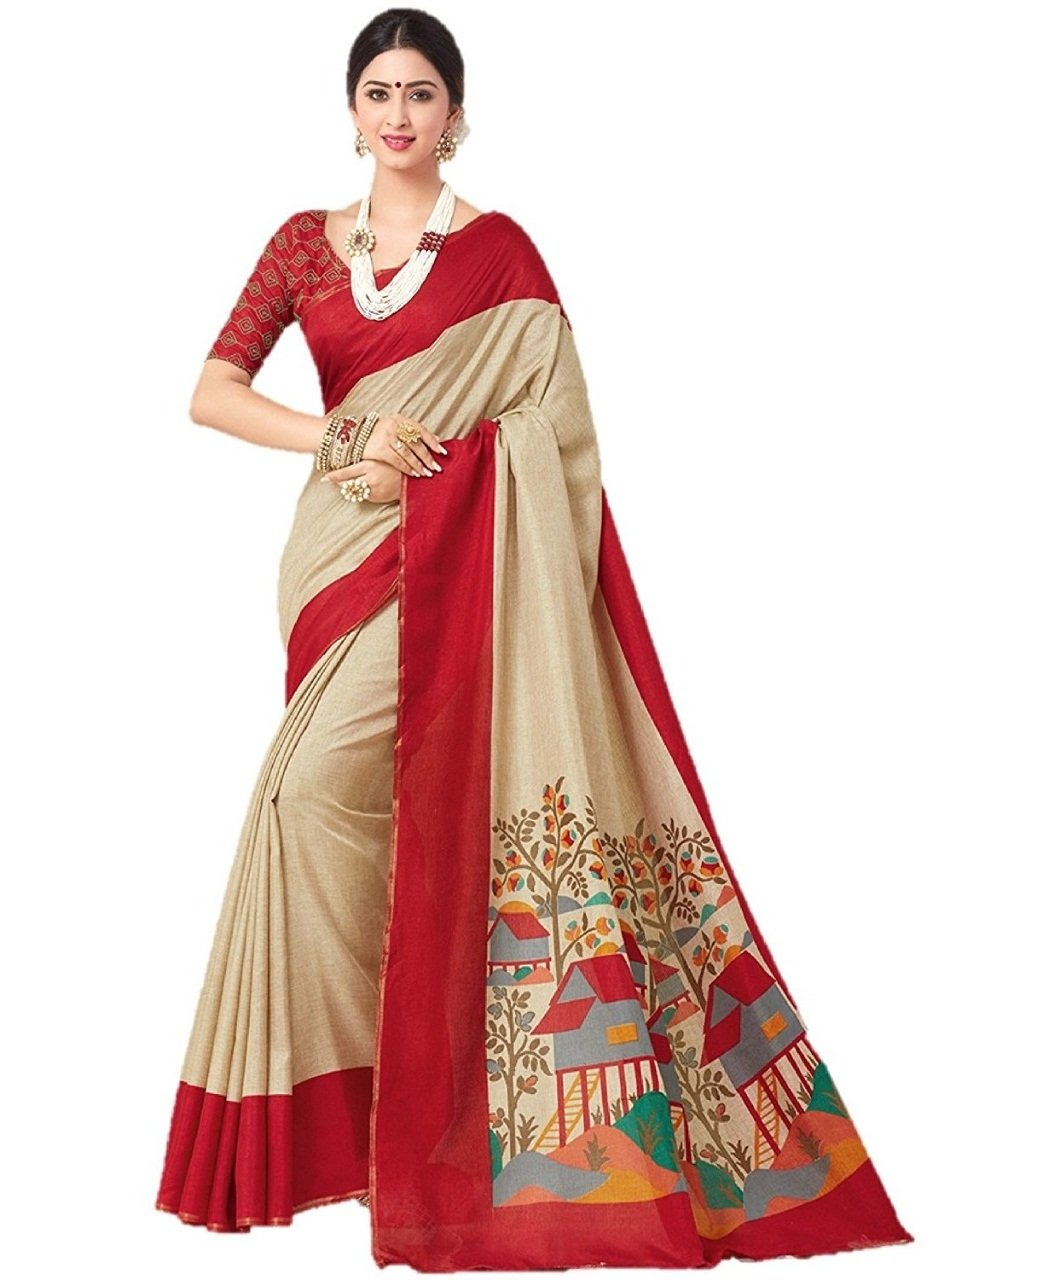 Bindani Studio Women's Saree With Blouse material For partywear,festival (Beige)